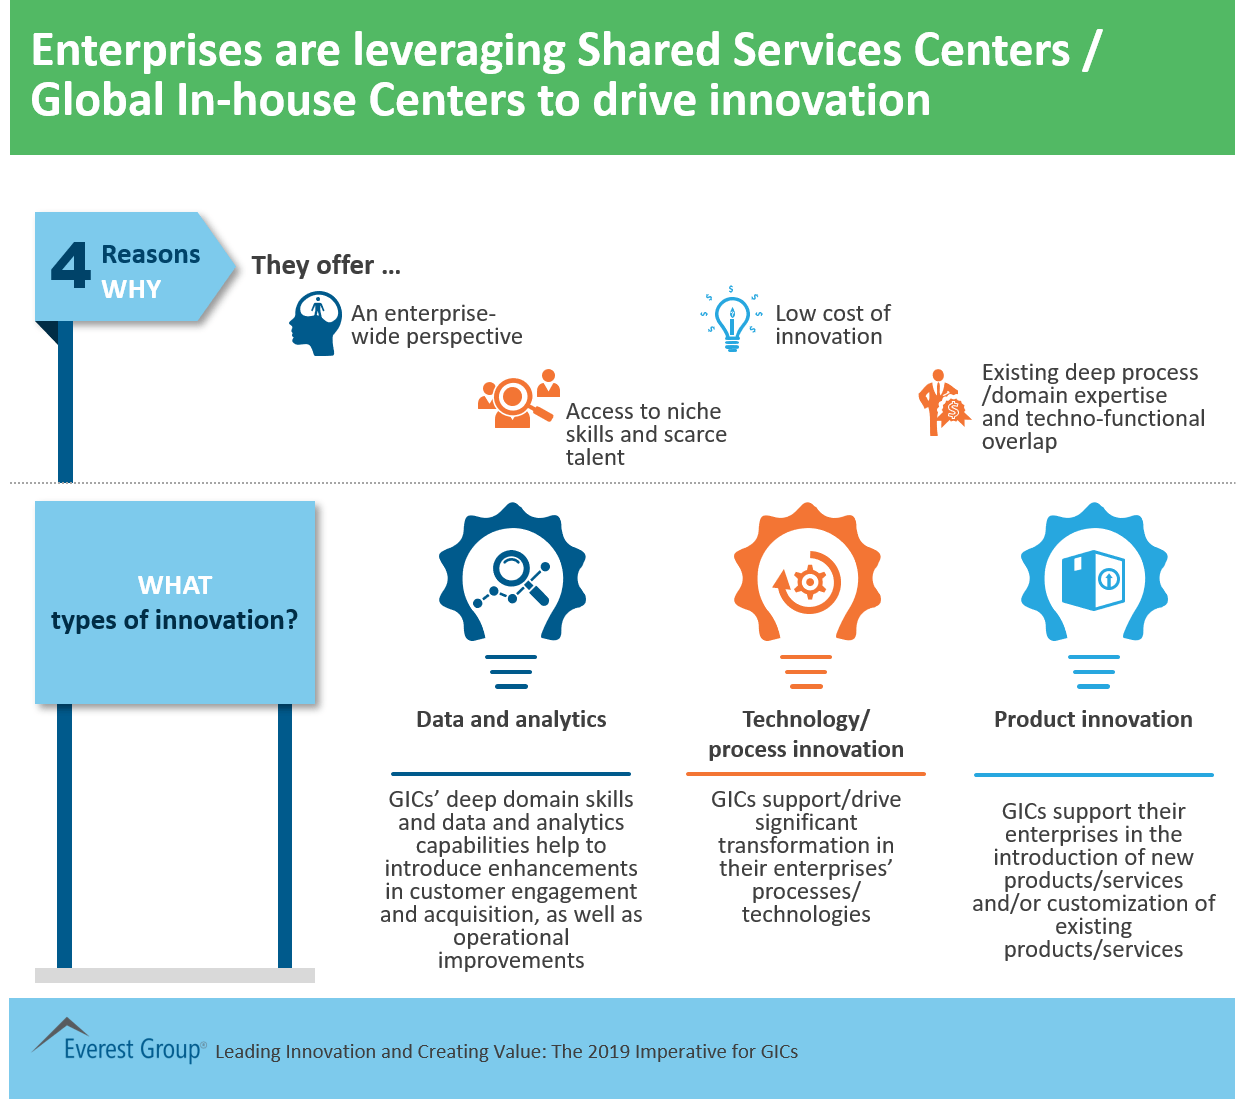 Enterprises leveraging SSCs for innovation